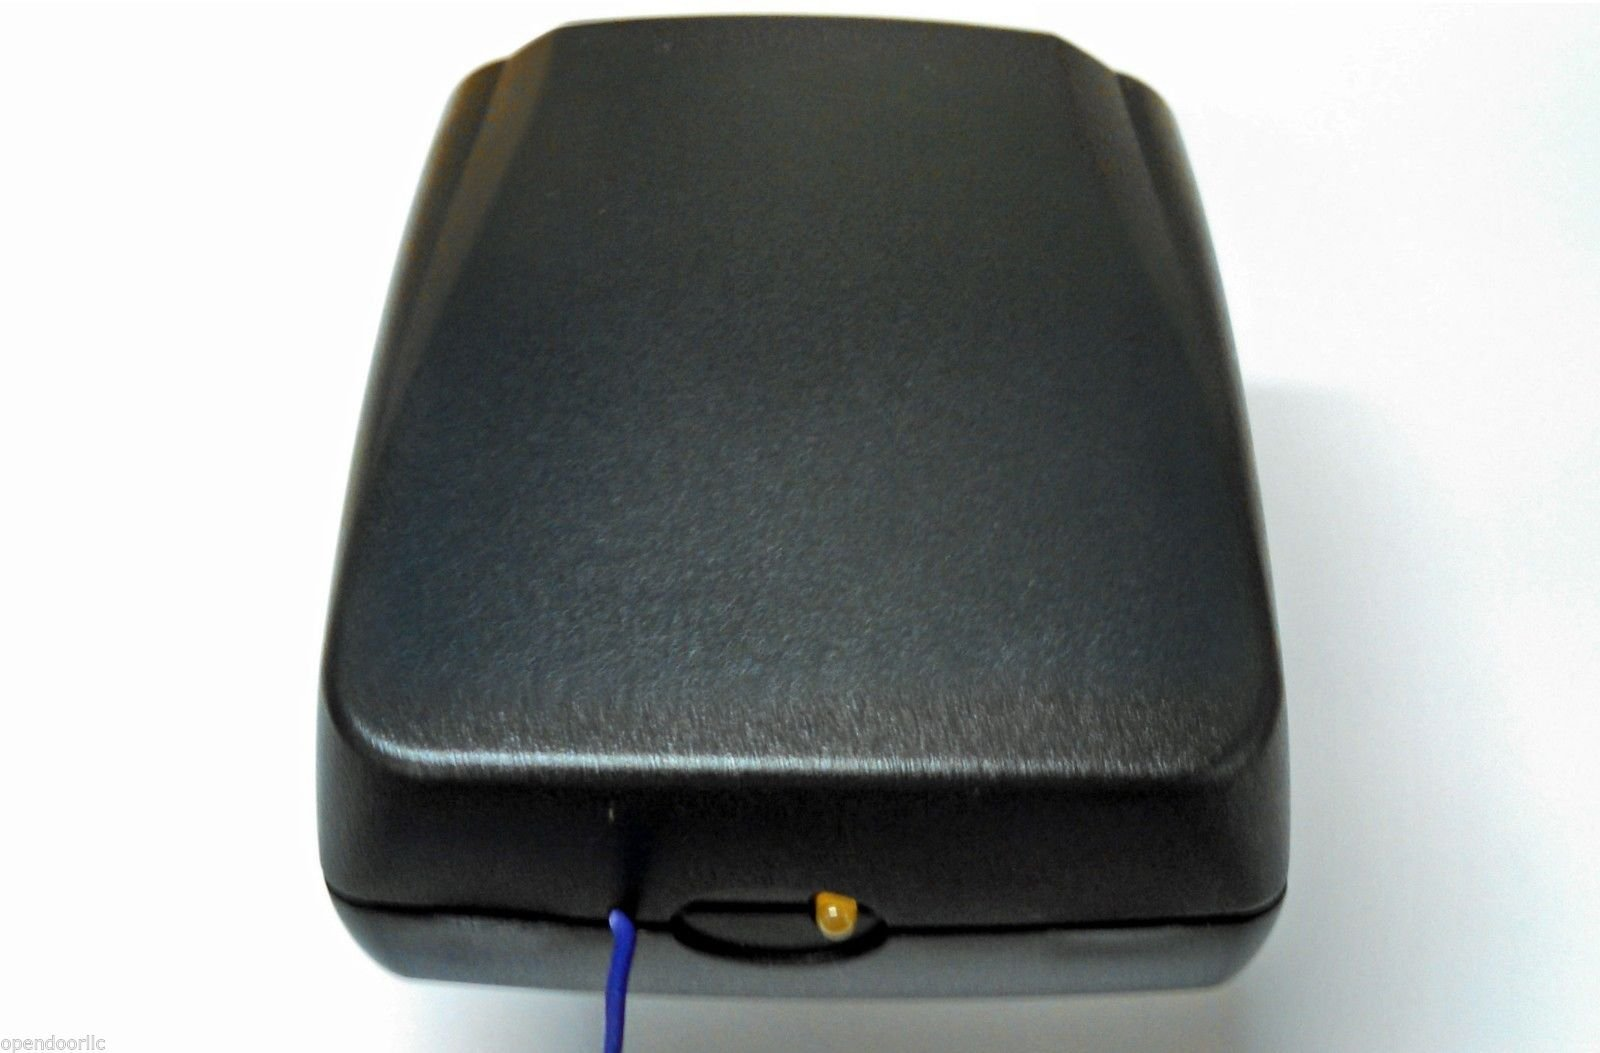 CAR2U Repeater for Security+ 2.0 Garage Opener LiftMaster Chamberlain RPTR Sears